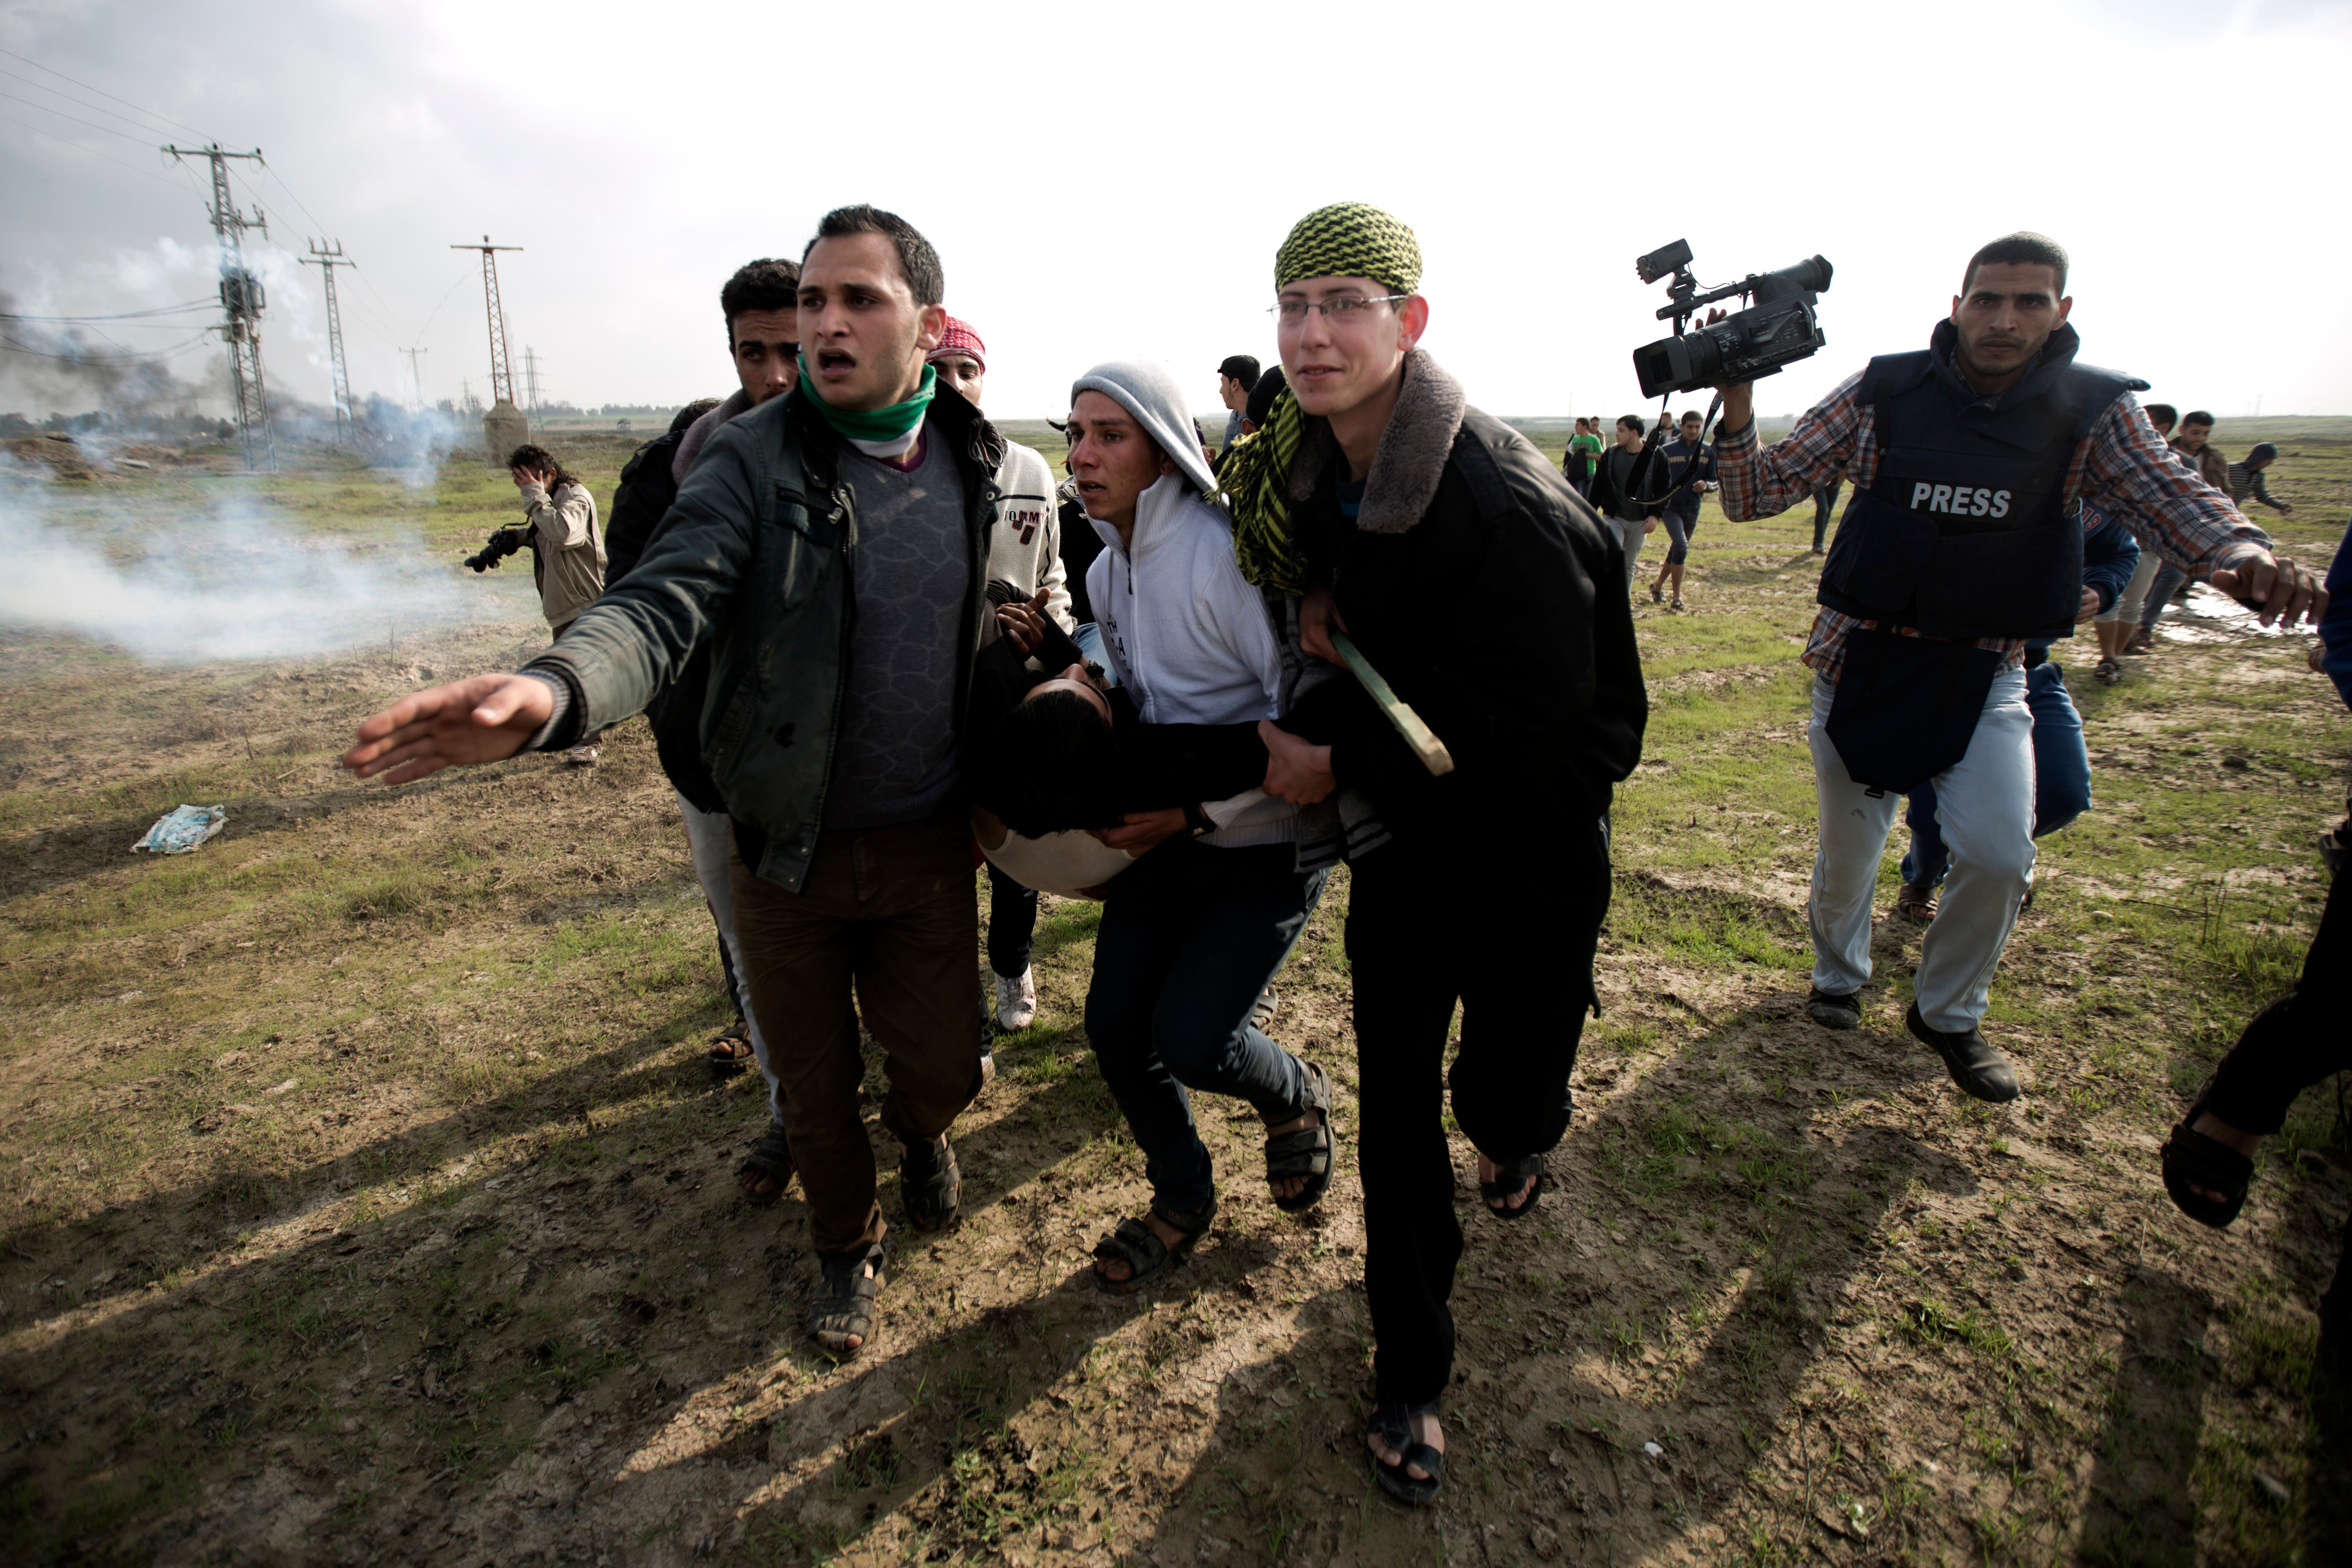 Israeli troops recently fired tear gas at Gazan protestors on the border last week, wounding two Palestinians (Mohammed Abed/AFP)